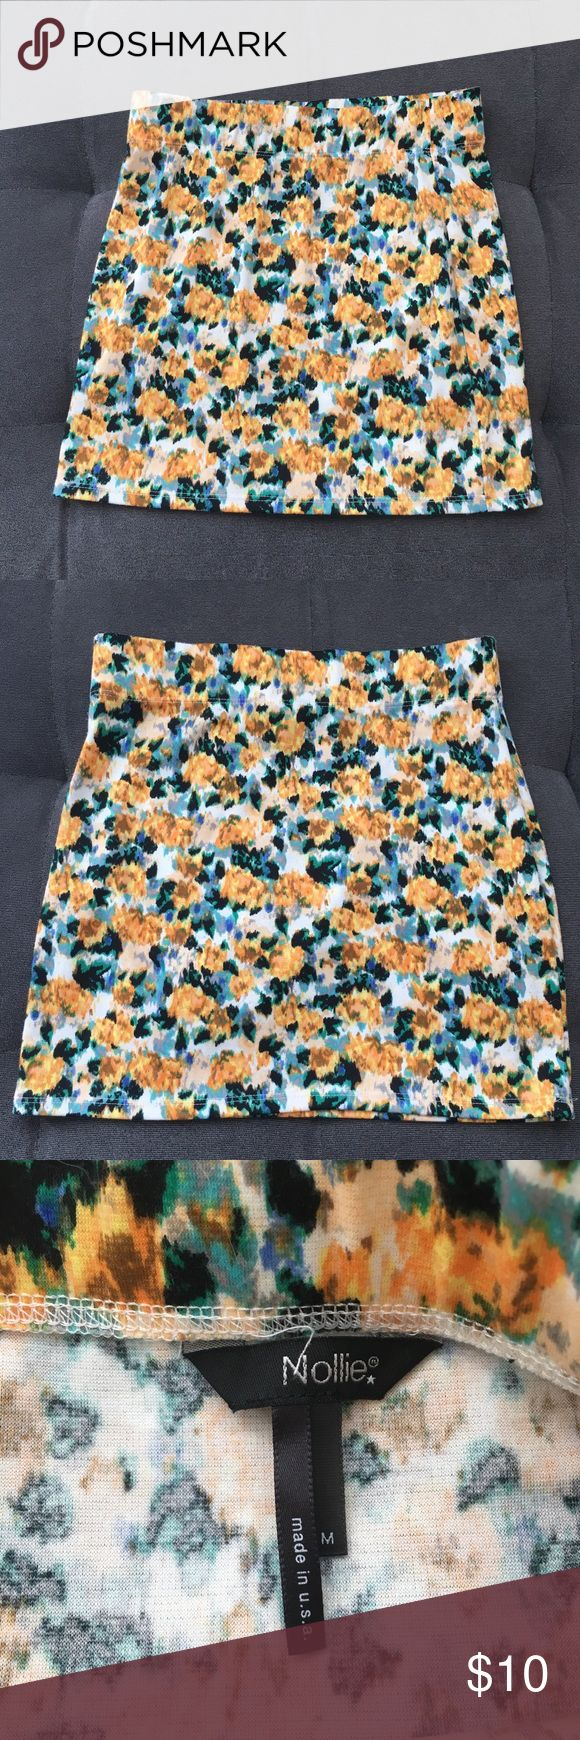 """Nollie PacSun Floral Mini Skirt Juniors Medium Nollie PacSun Floral Mini Skirt. Elastic waist. White, green, black, blue, yellow, orange colored.   Size: Juniors Medium  About 15"""" length (top to bottom)   Good pre loved condition. Please see last pic for small piling area.   Bundle fav items for a personal discount. Offers are always welcome, too! No trades. Thank you! (11)  Tags: summer, dance, bodycon, floral, back to school Nollie Skirts Mini"""